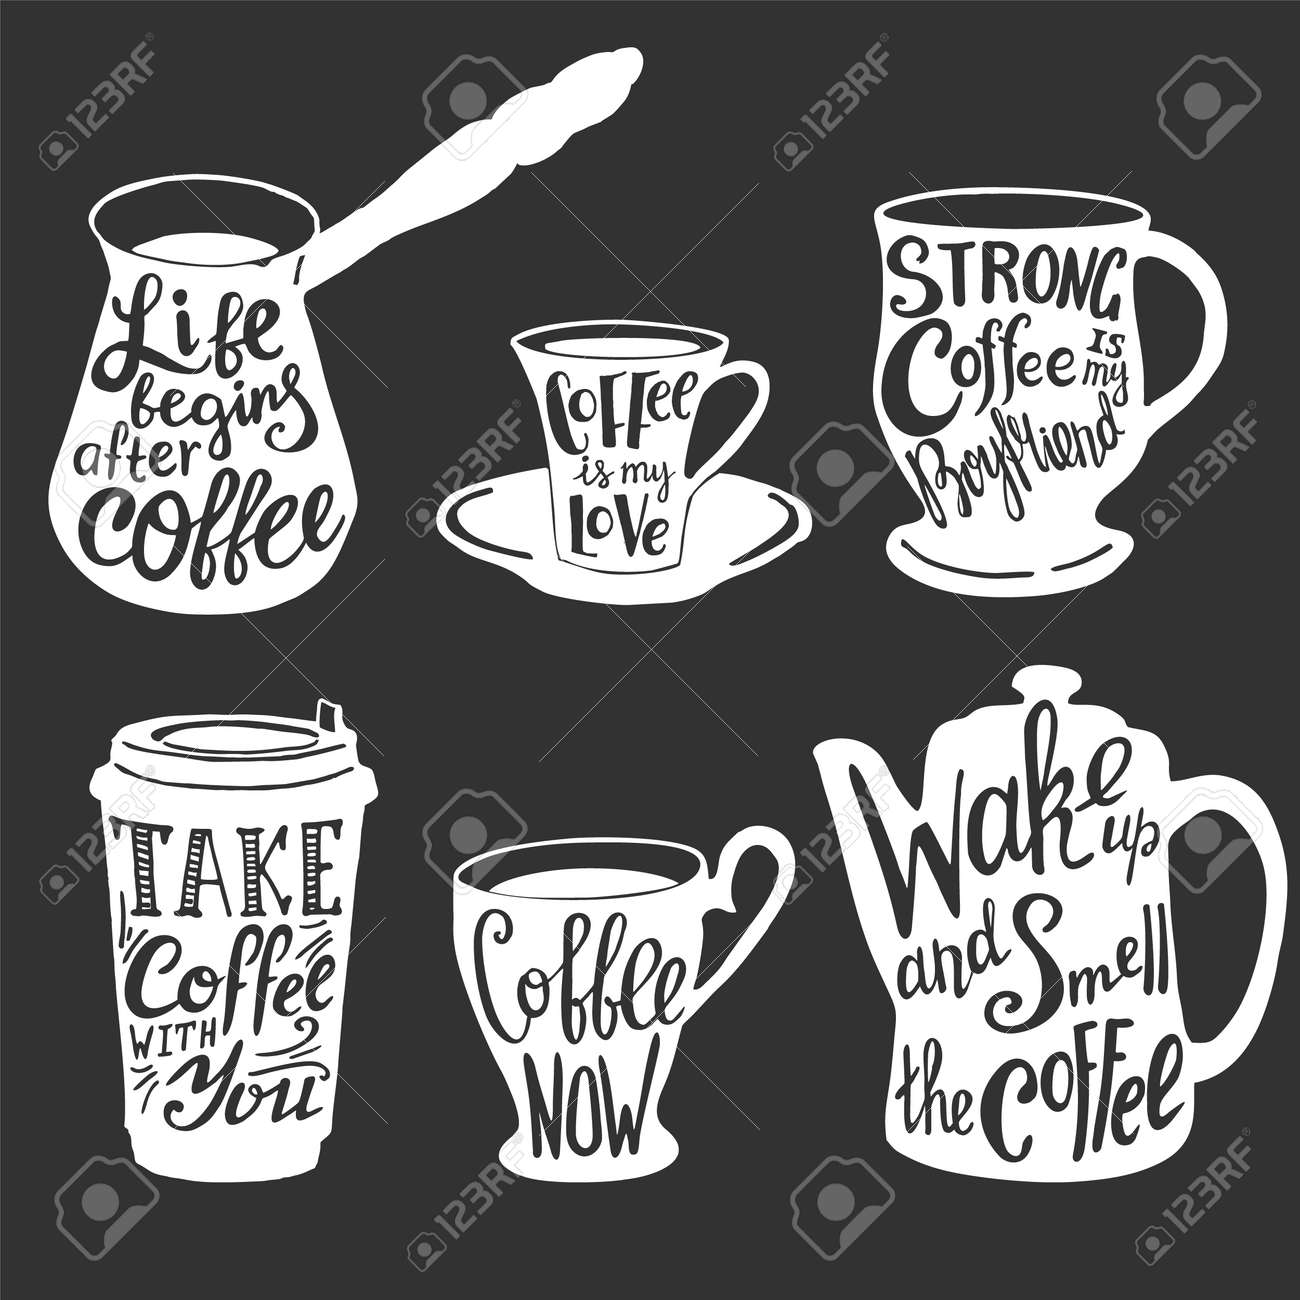 Vector Coffee Quotes And Sayings Typography Set Royalty Free Cliparts Vectors And Stock Illustration Image 105164138